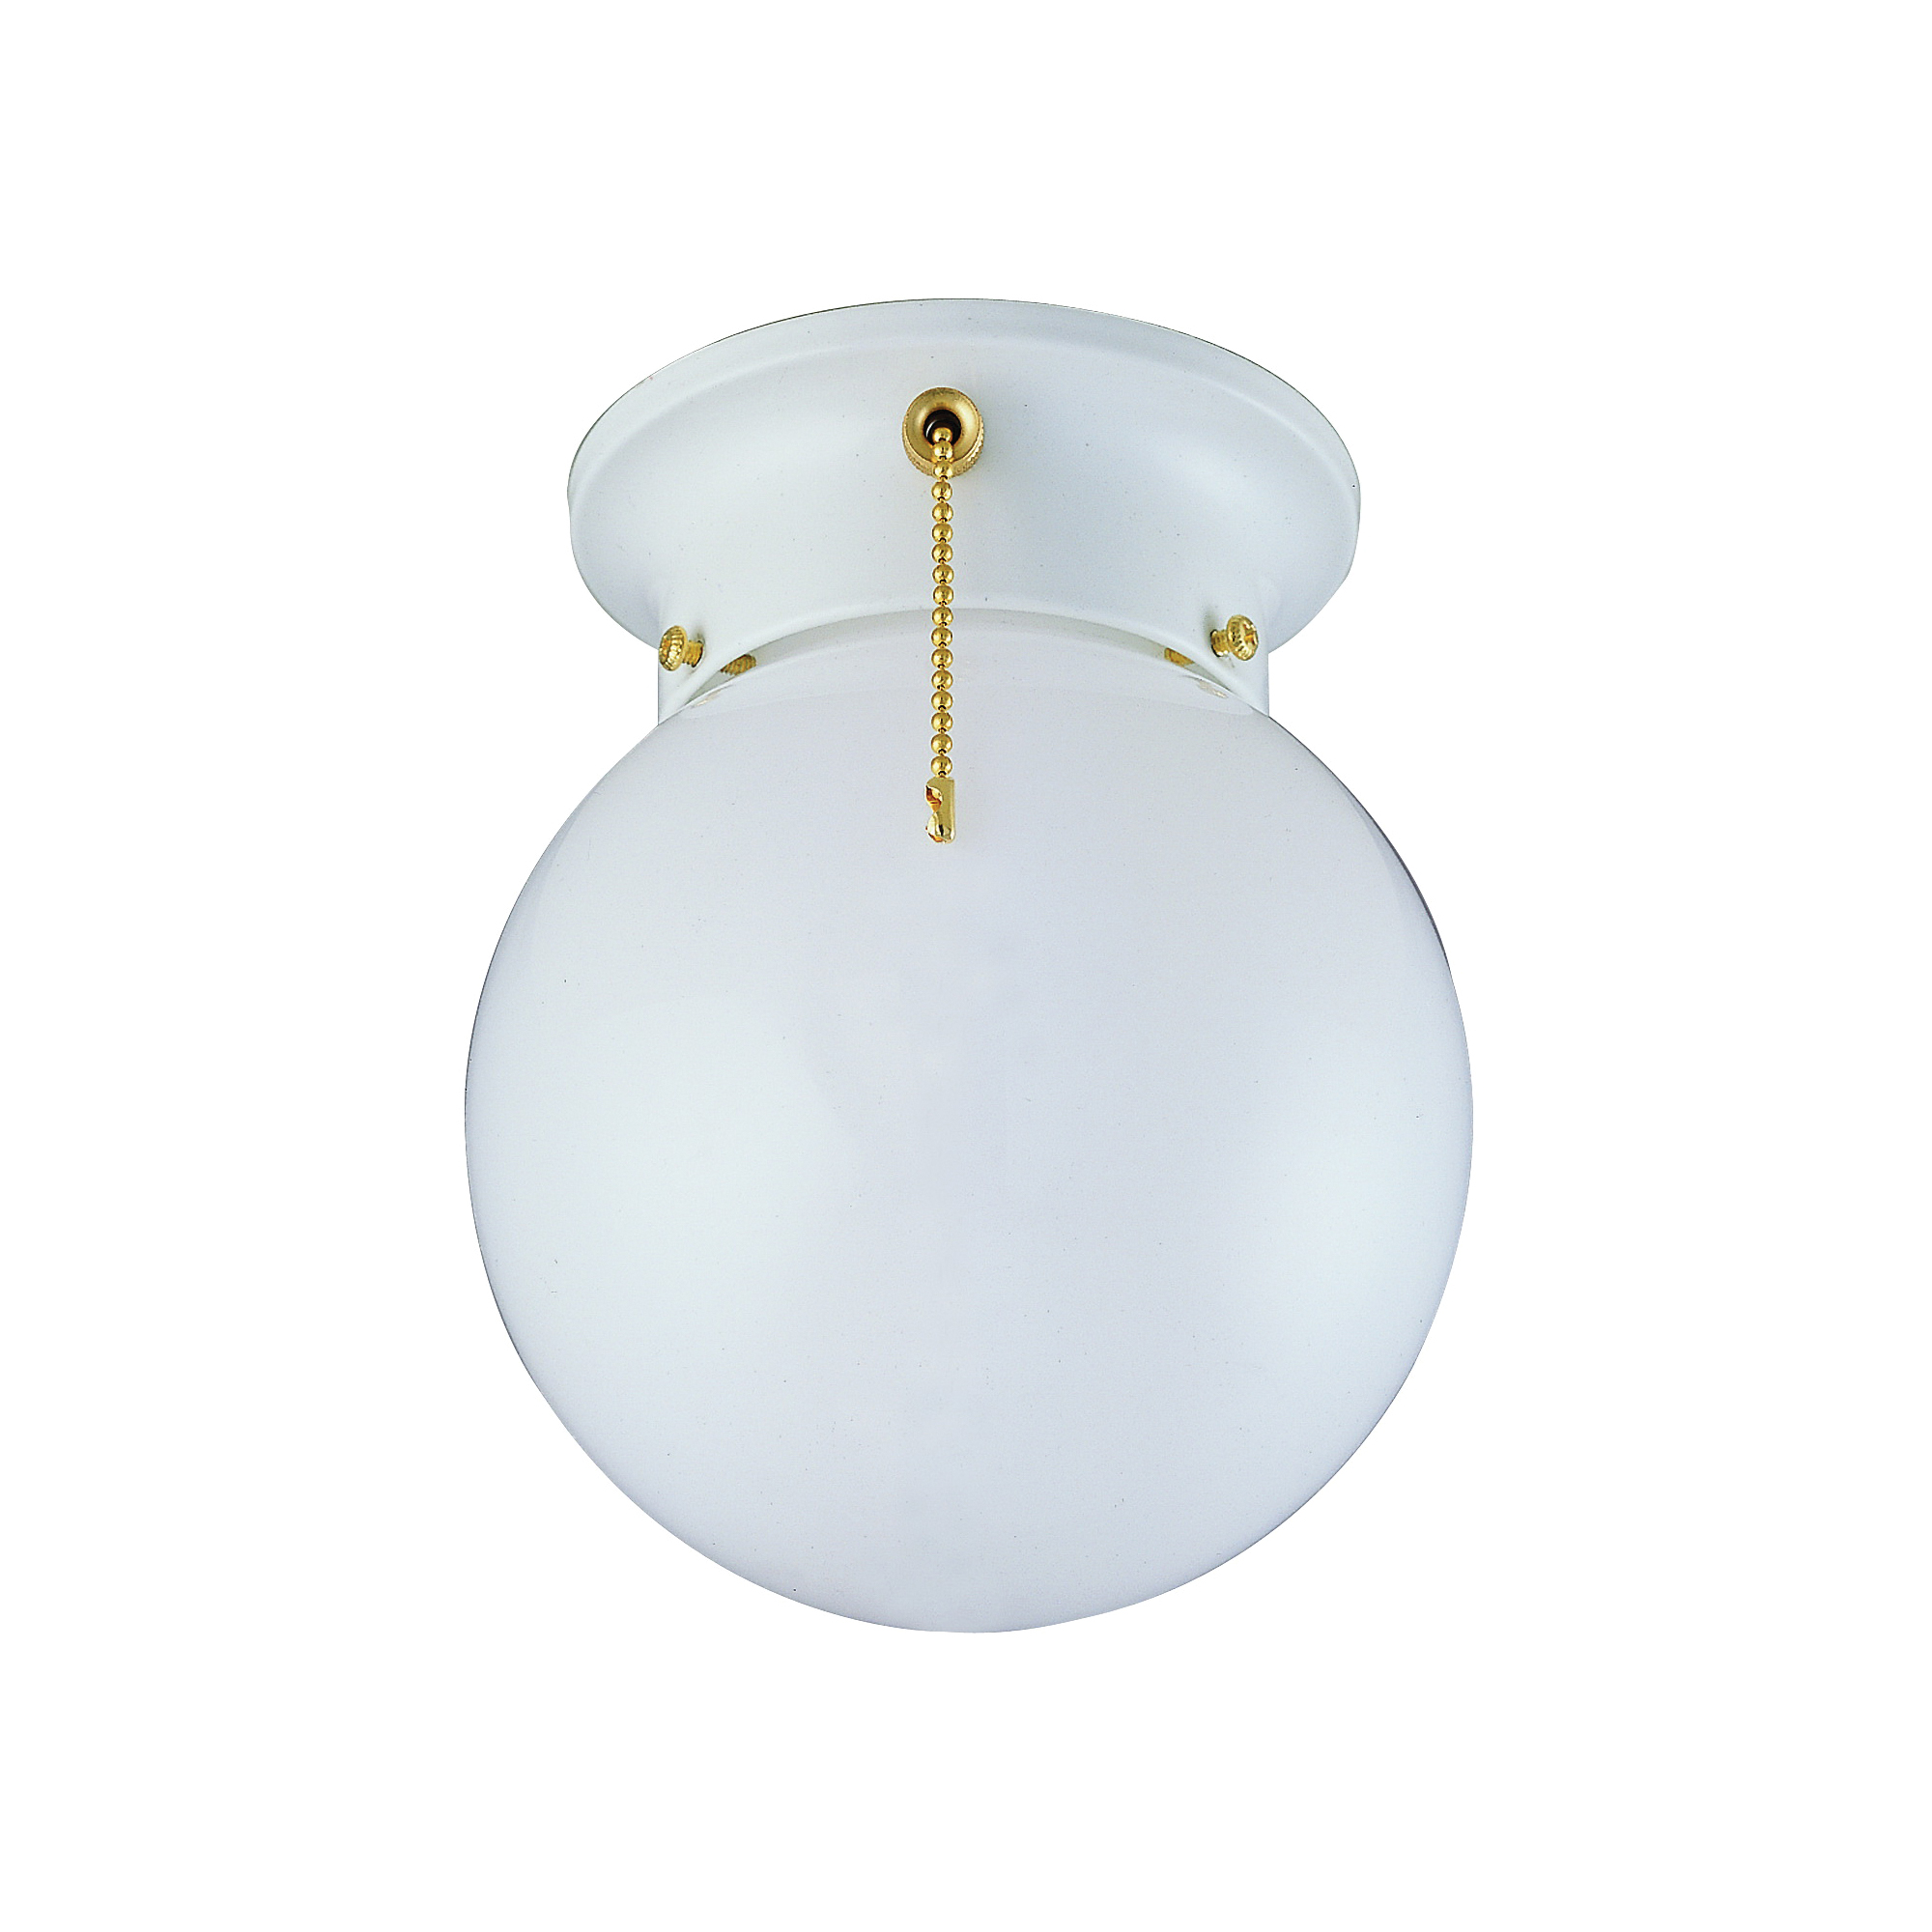 Picture of Boston Harbor F3WH01-33753L Ceiling Light Fixture, 60 W, 1-Lamp, CFL Lamp, White Fixture